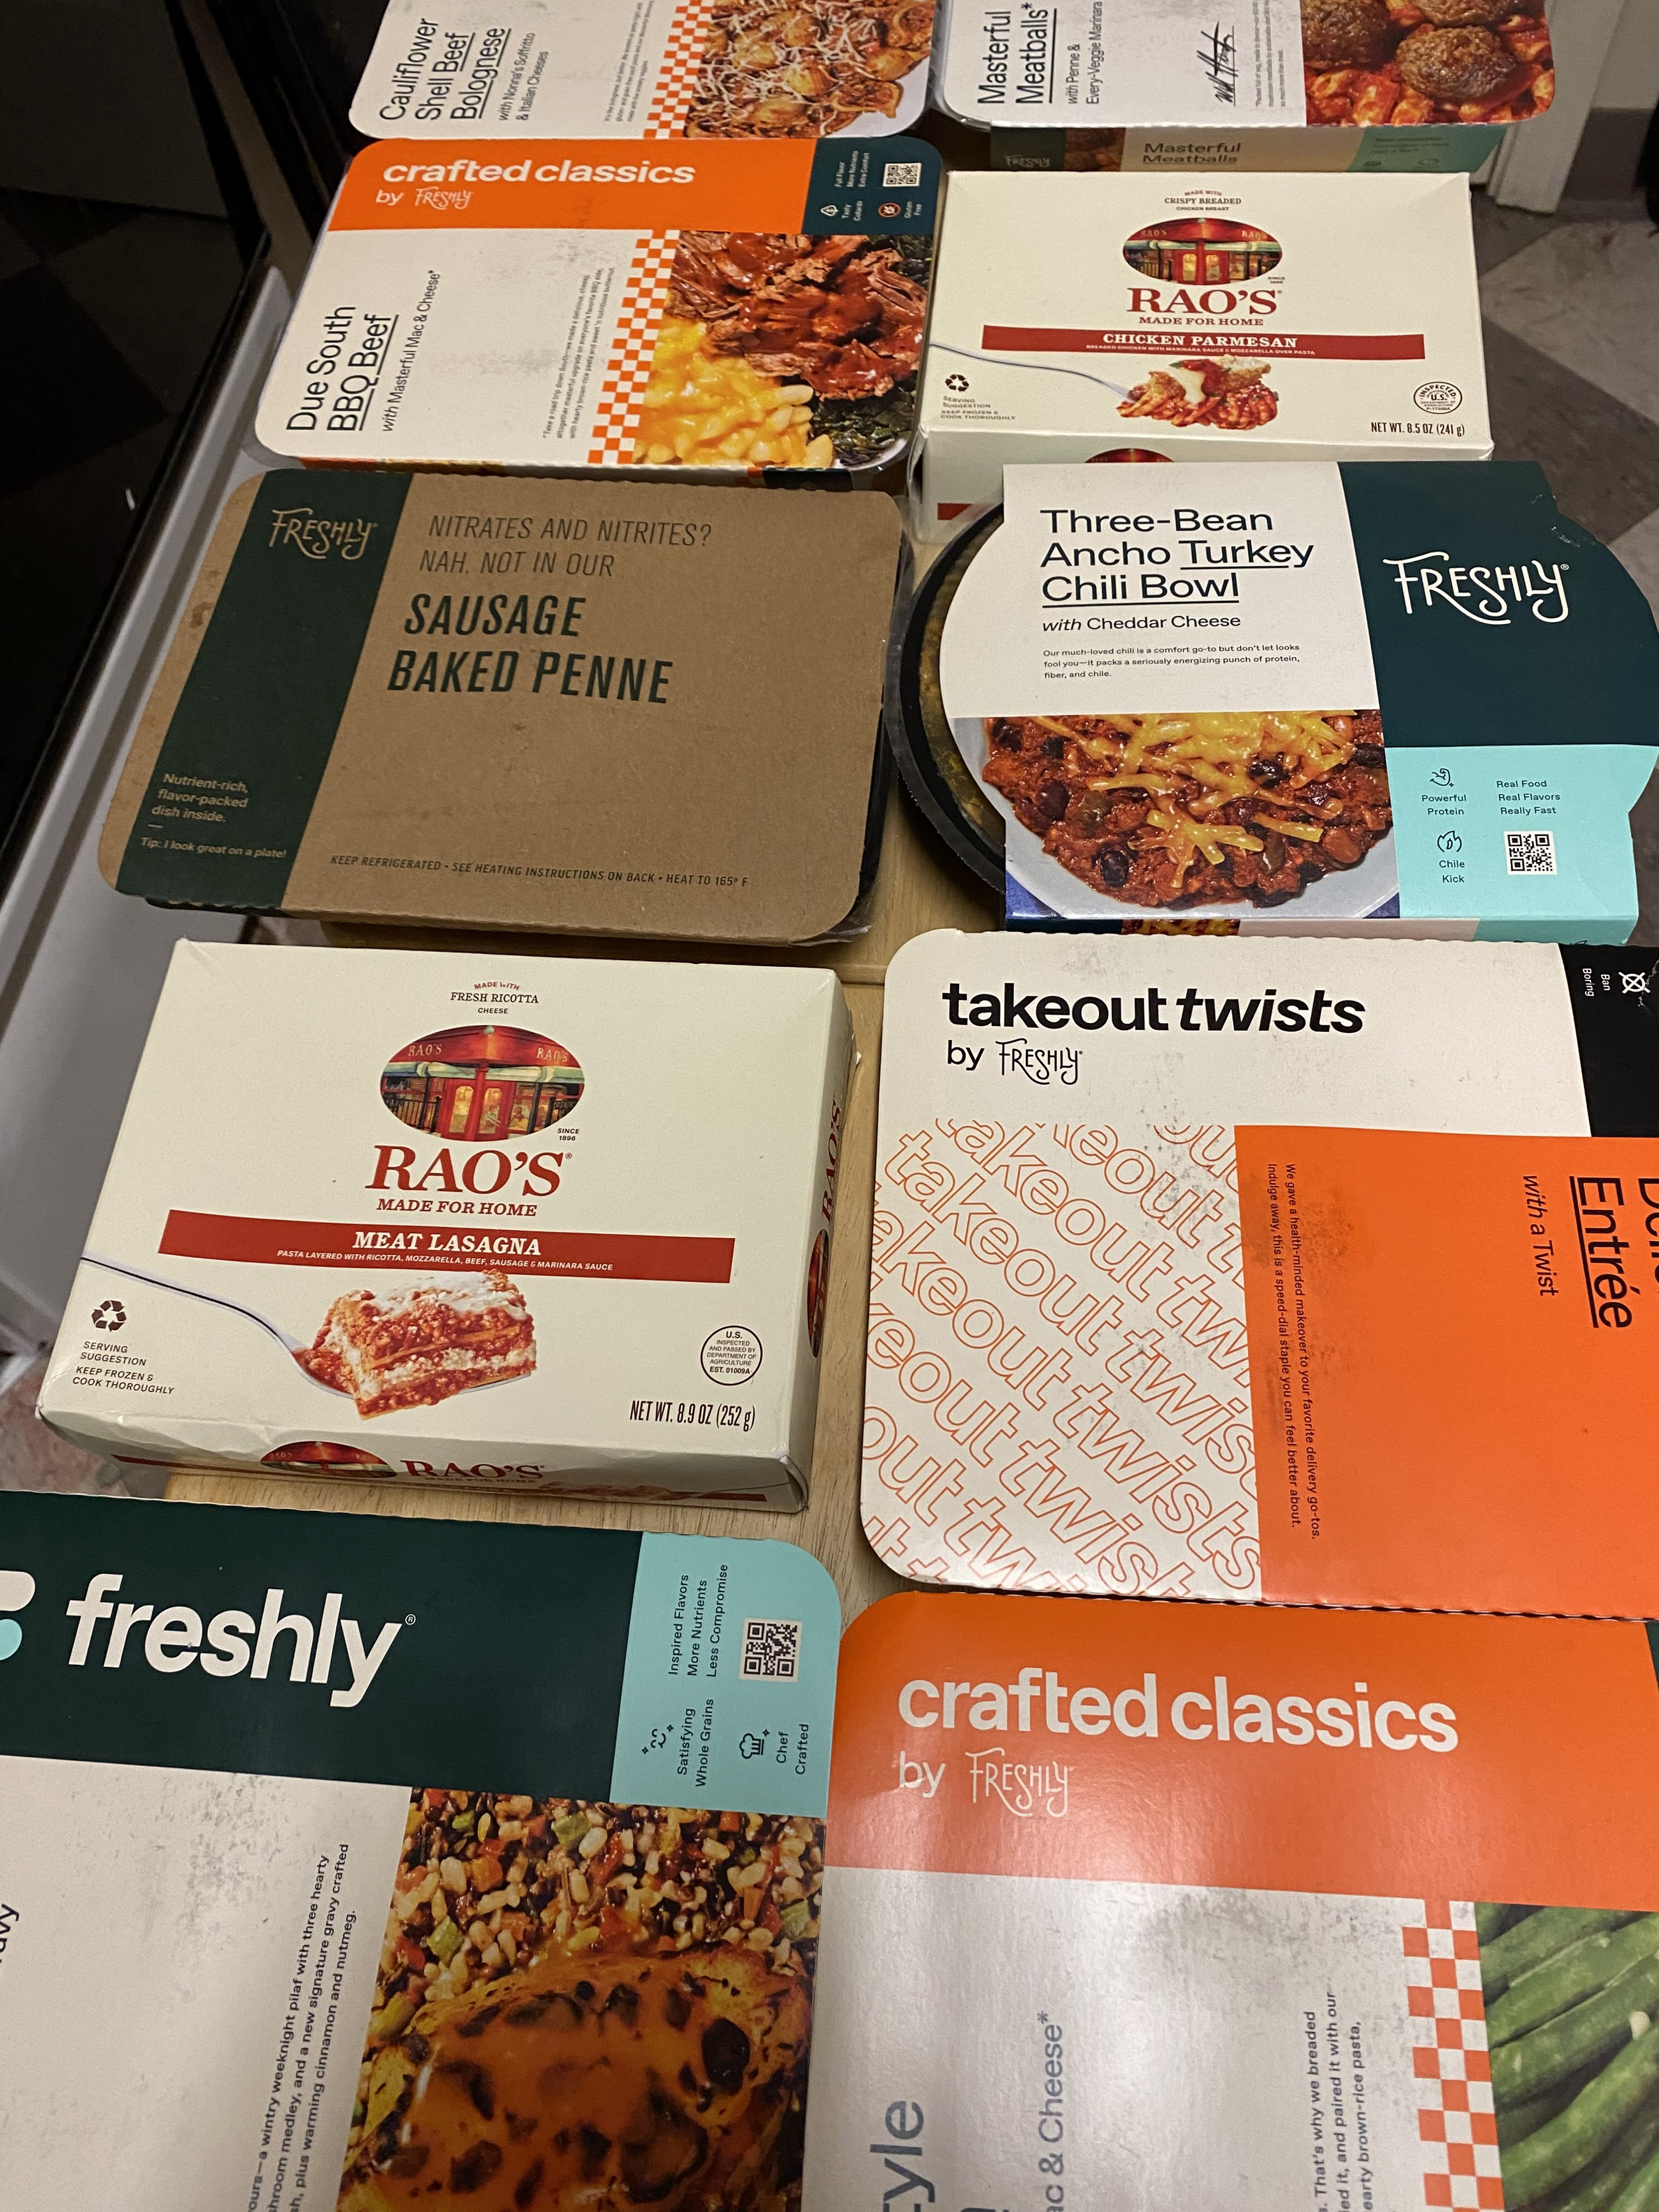 Freshly chef-prepared meals and Rao's Italian dinners